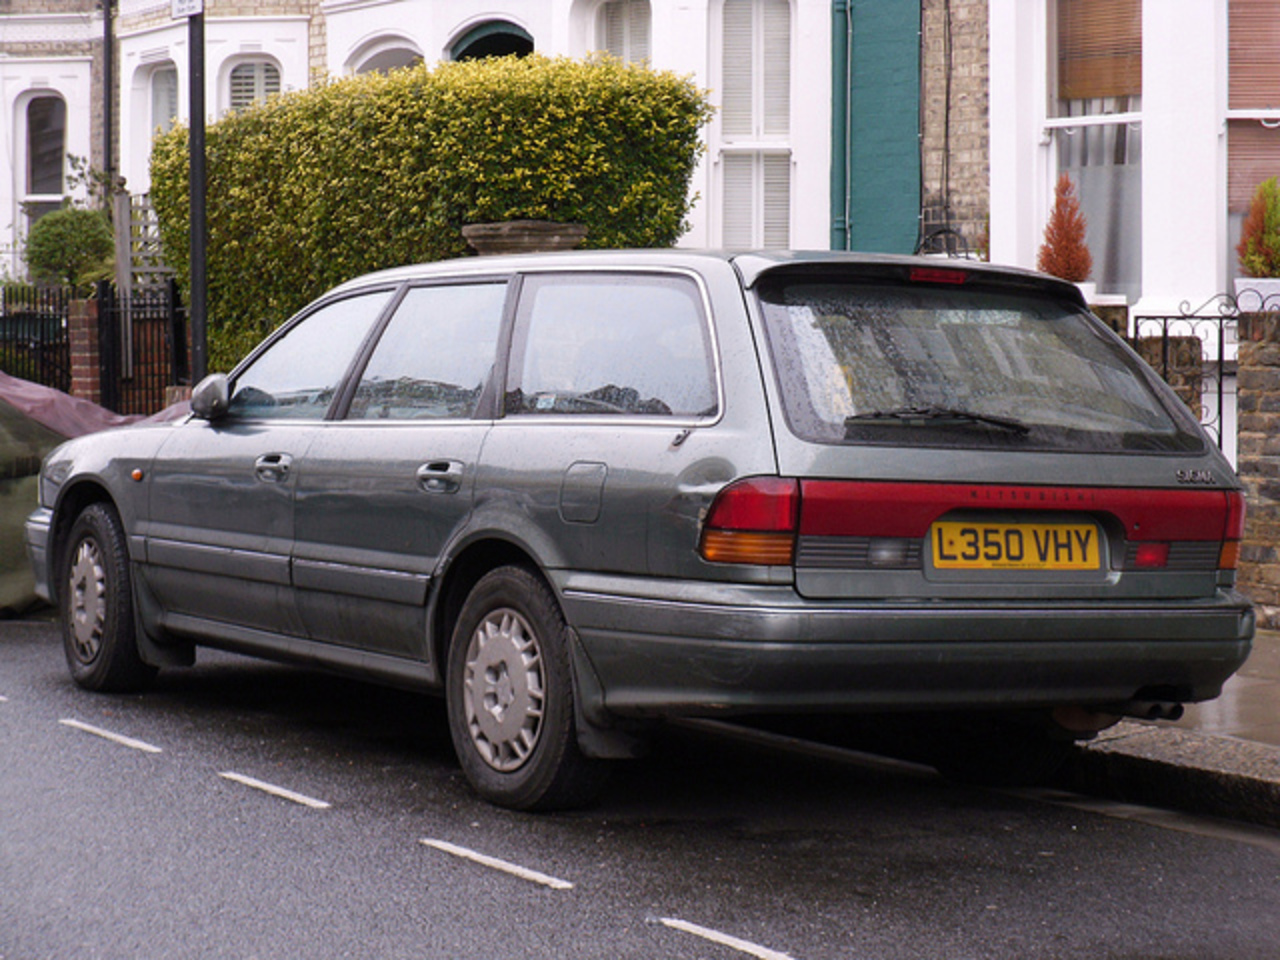 1994 Mitsubishi Sigma 3.0 V6 Automatic Estate. | Flickr - Photo ...